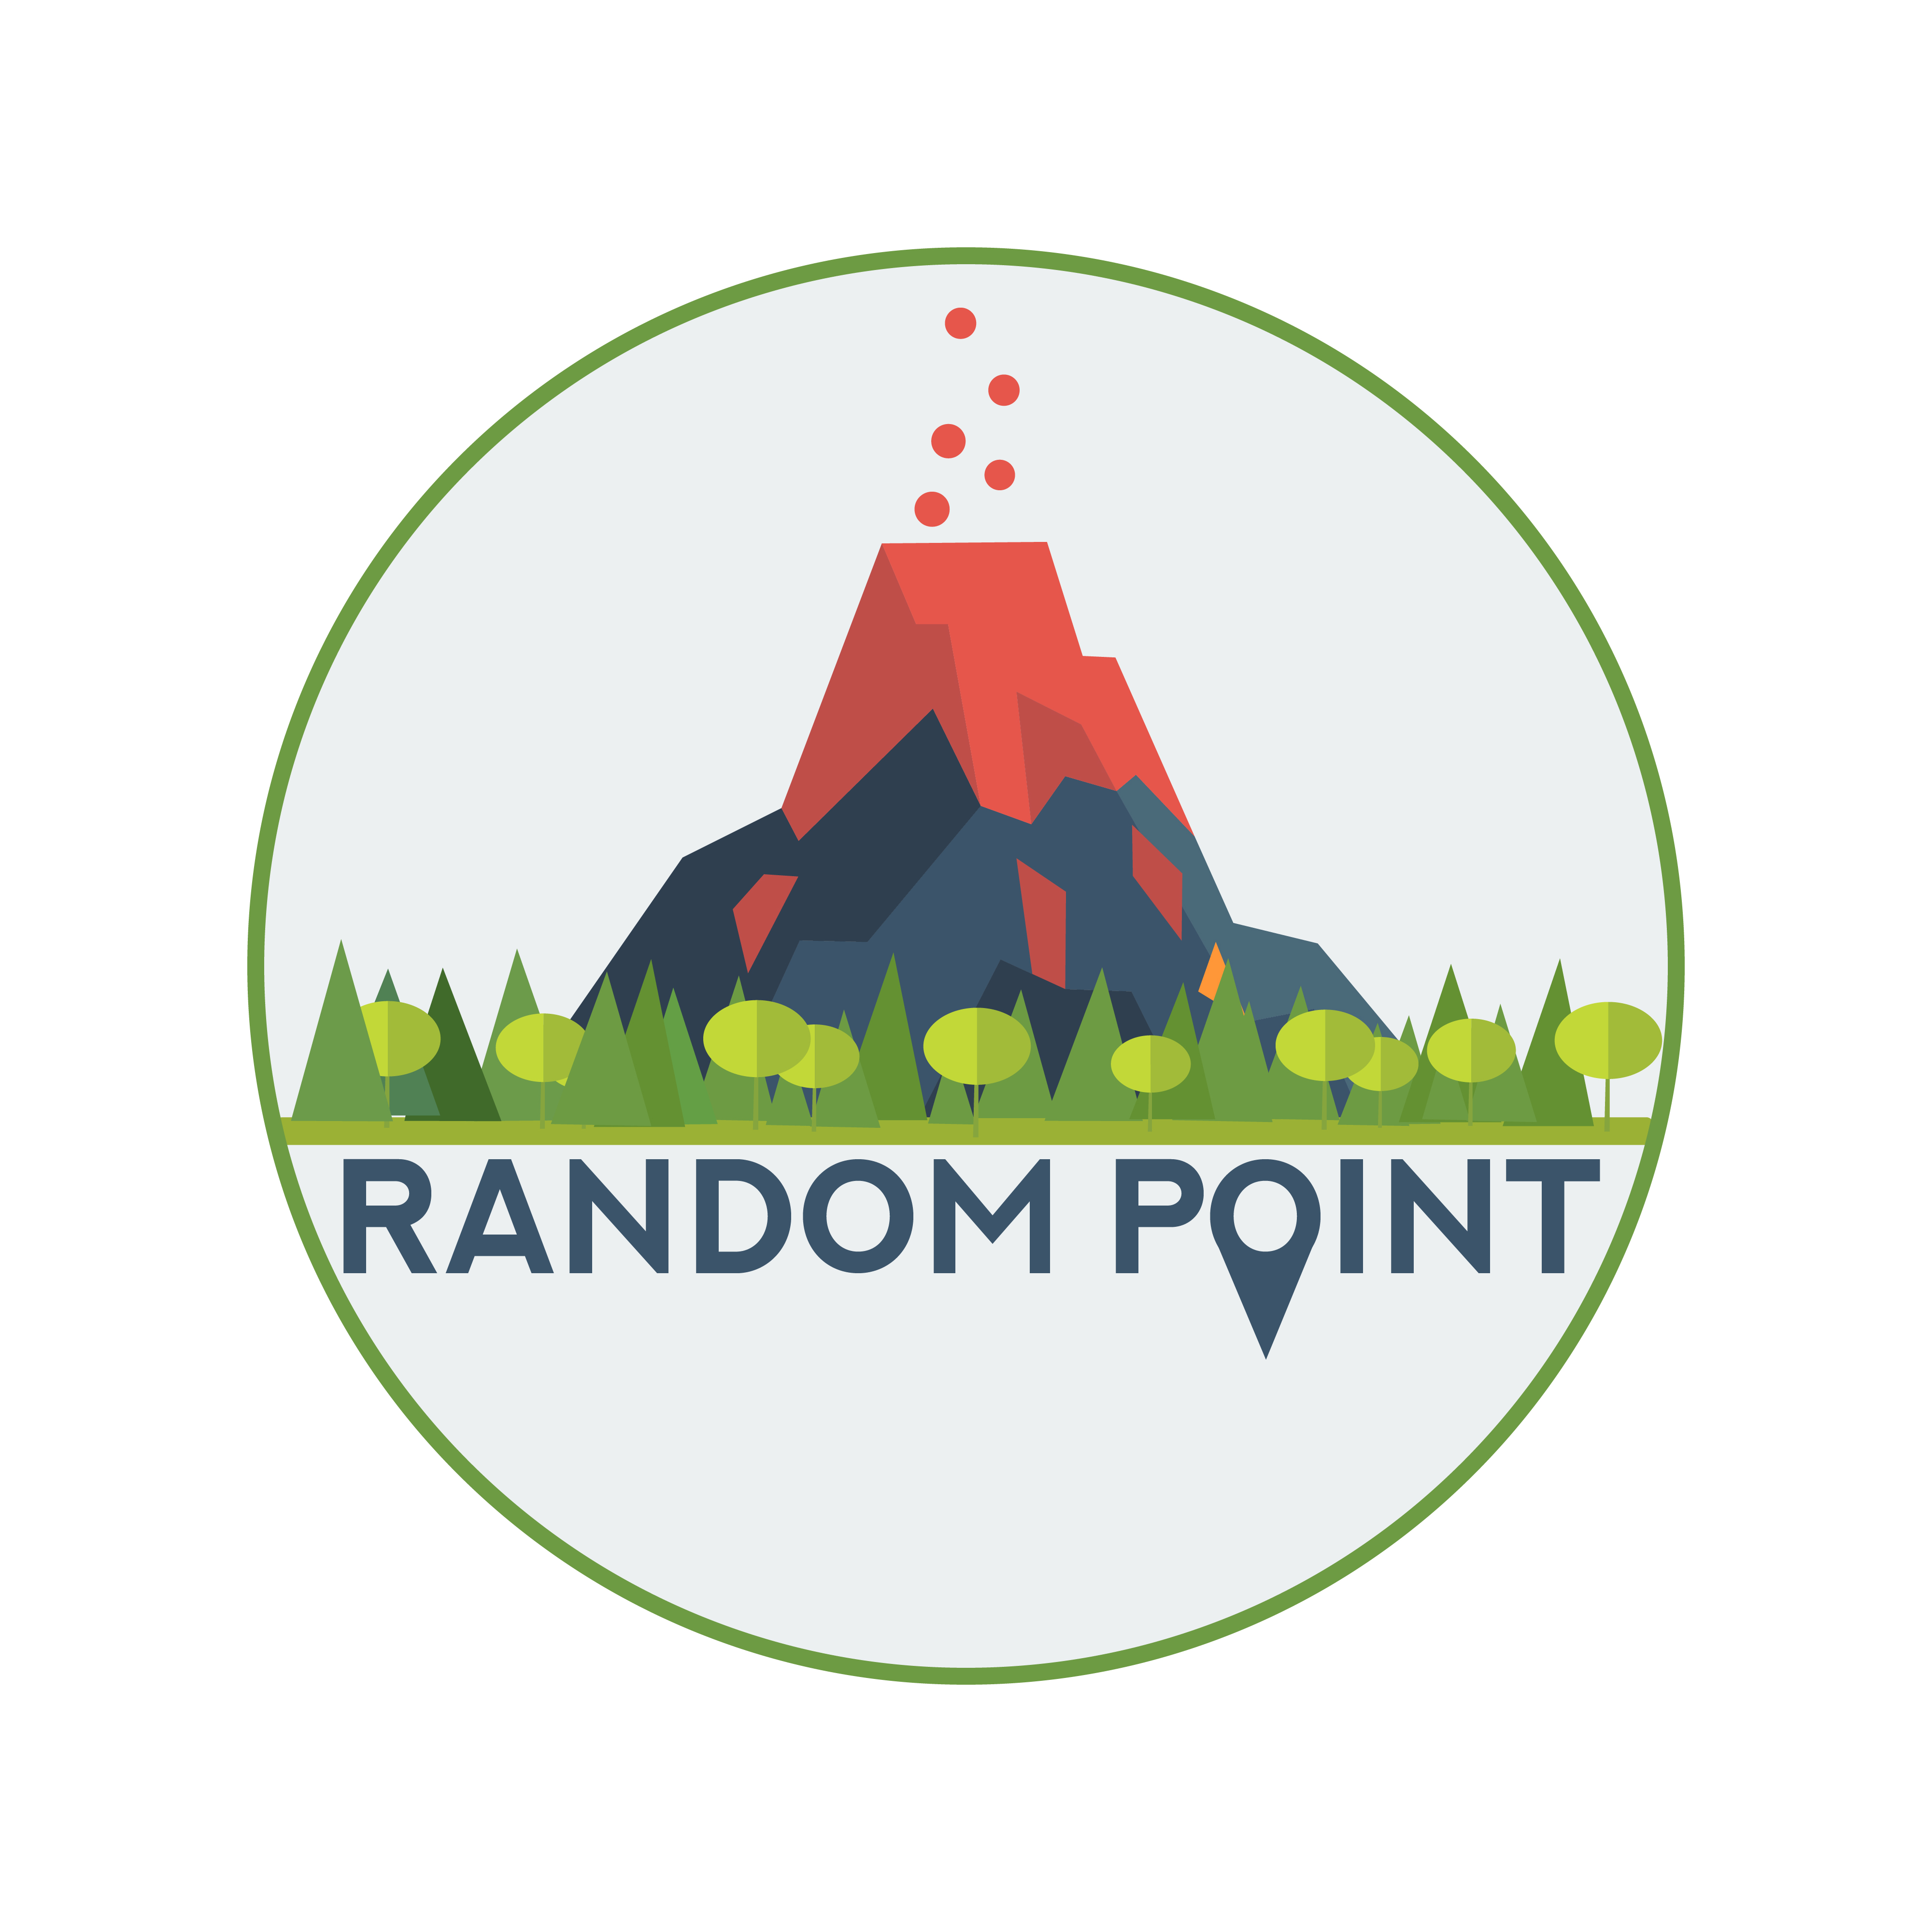 randomness and points